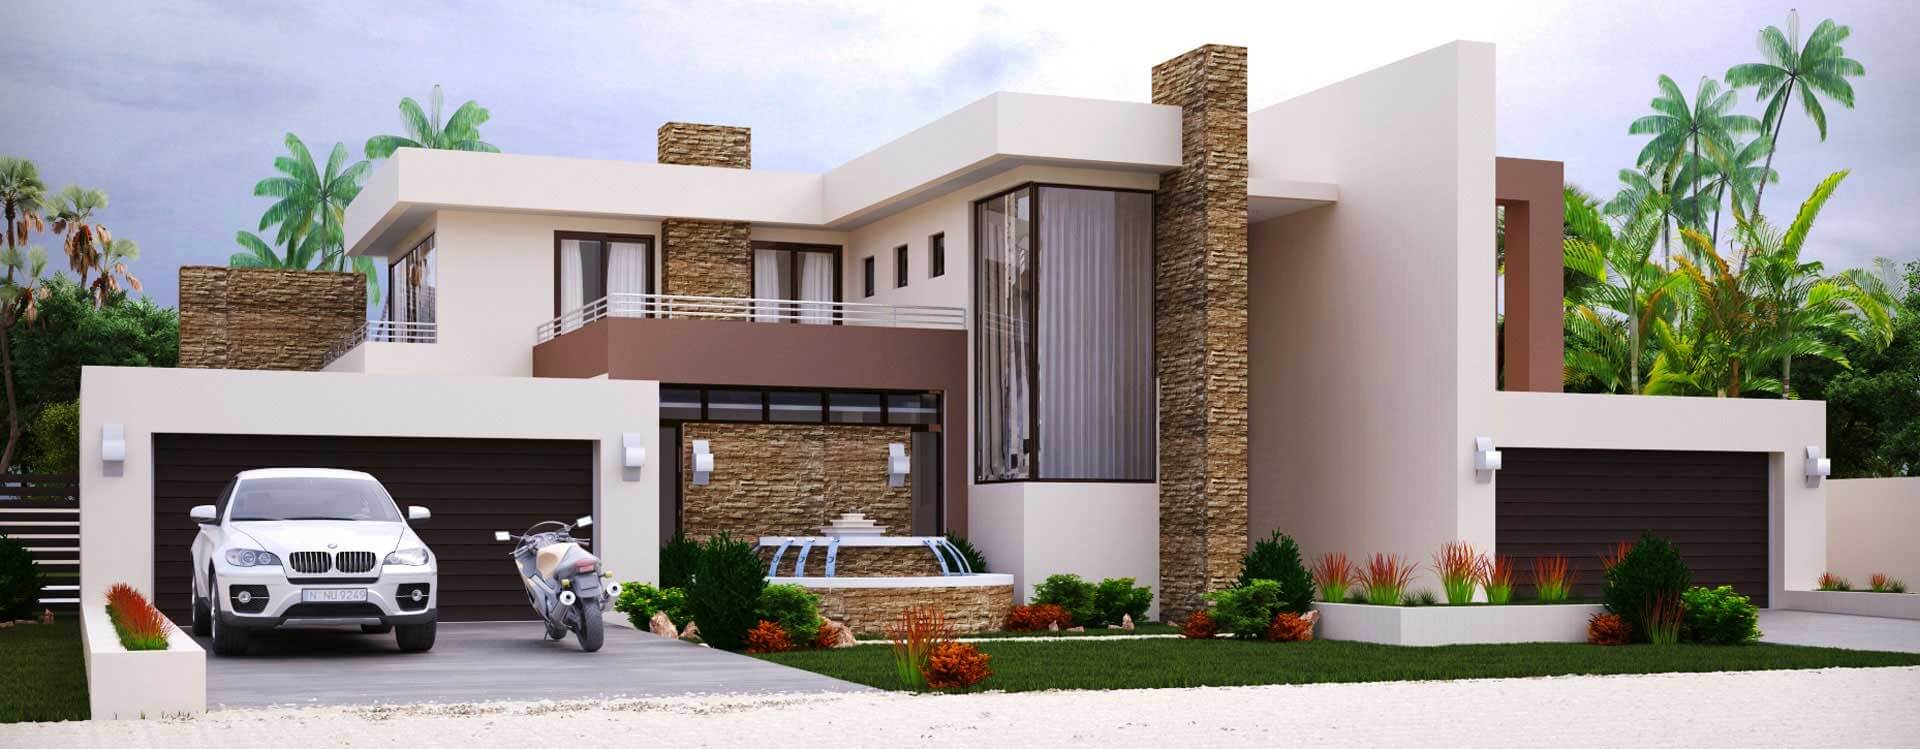 Perfect Modern Style House Plan, 4 Bedroom, Double Storey Floor Plans, Home Design,